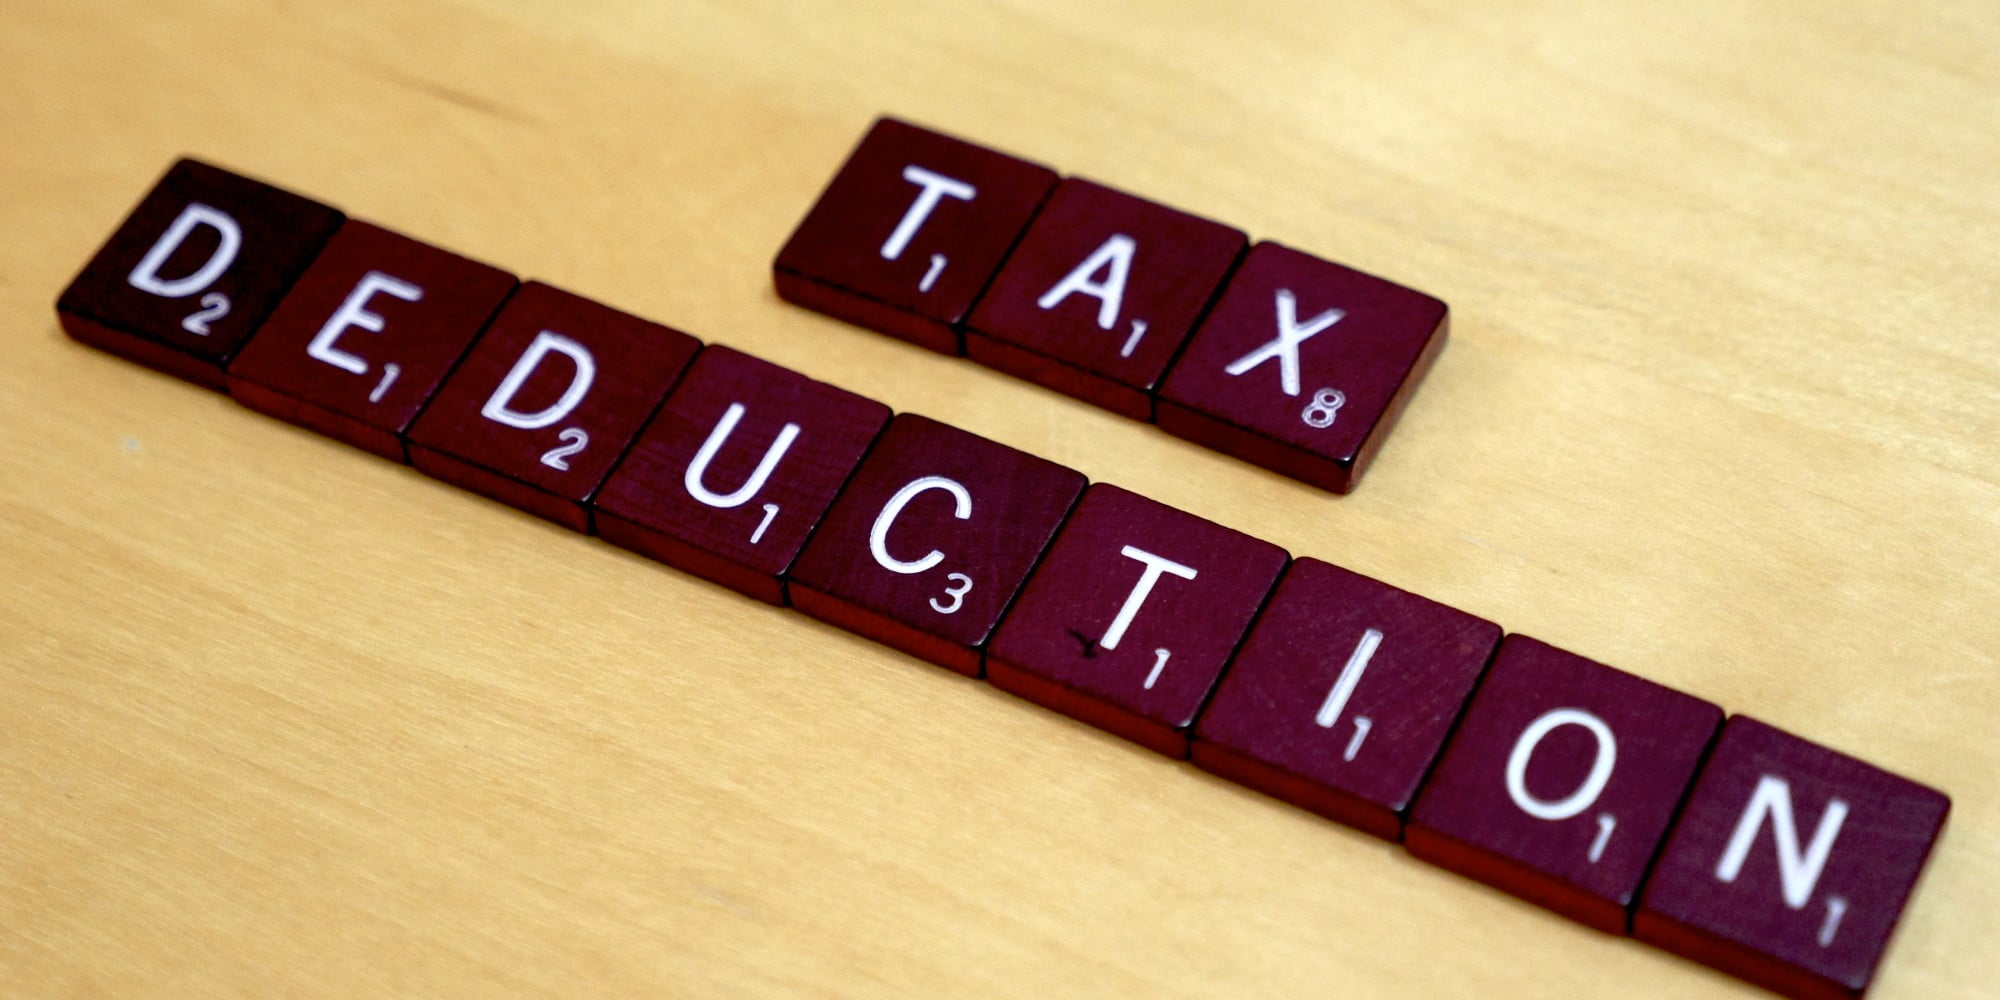 tax-deduction-scrabble-word